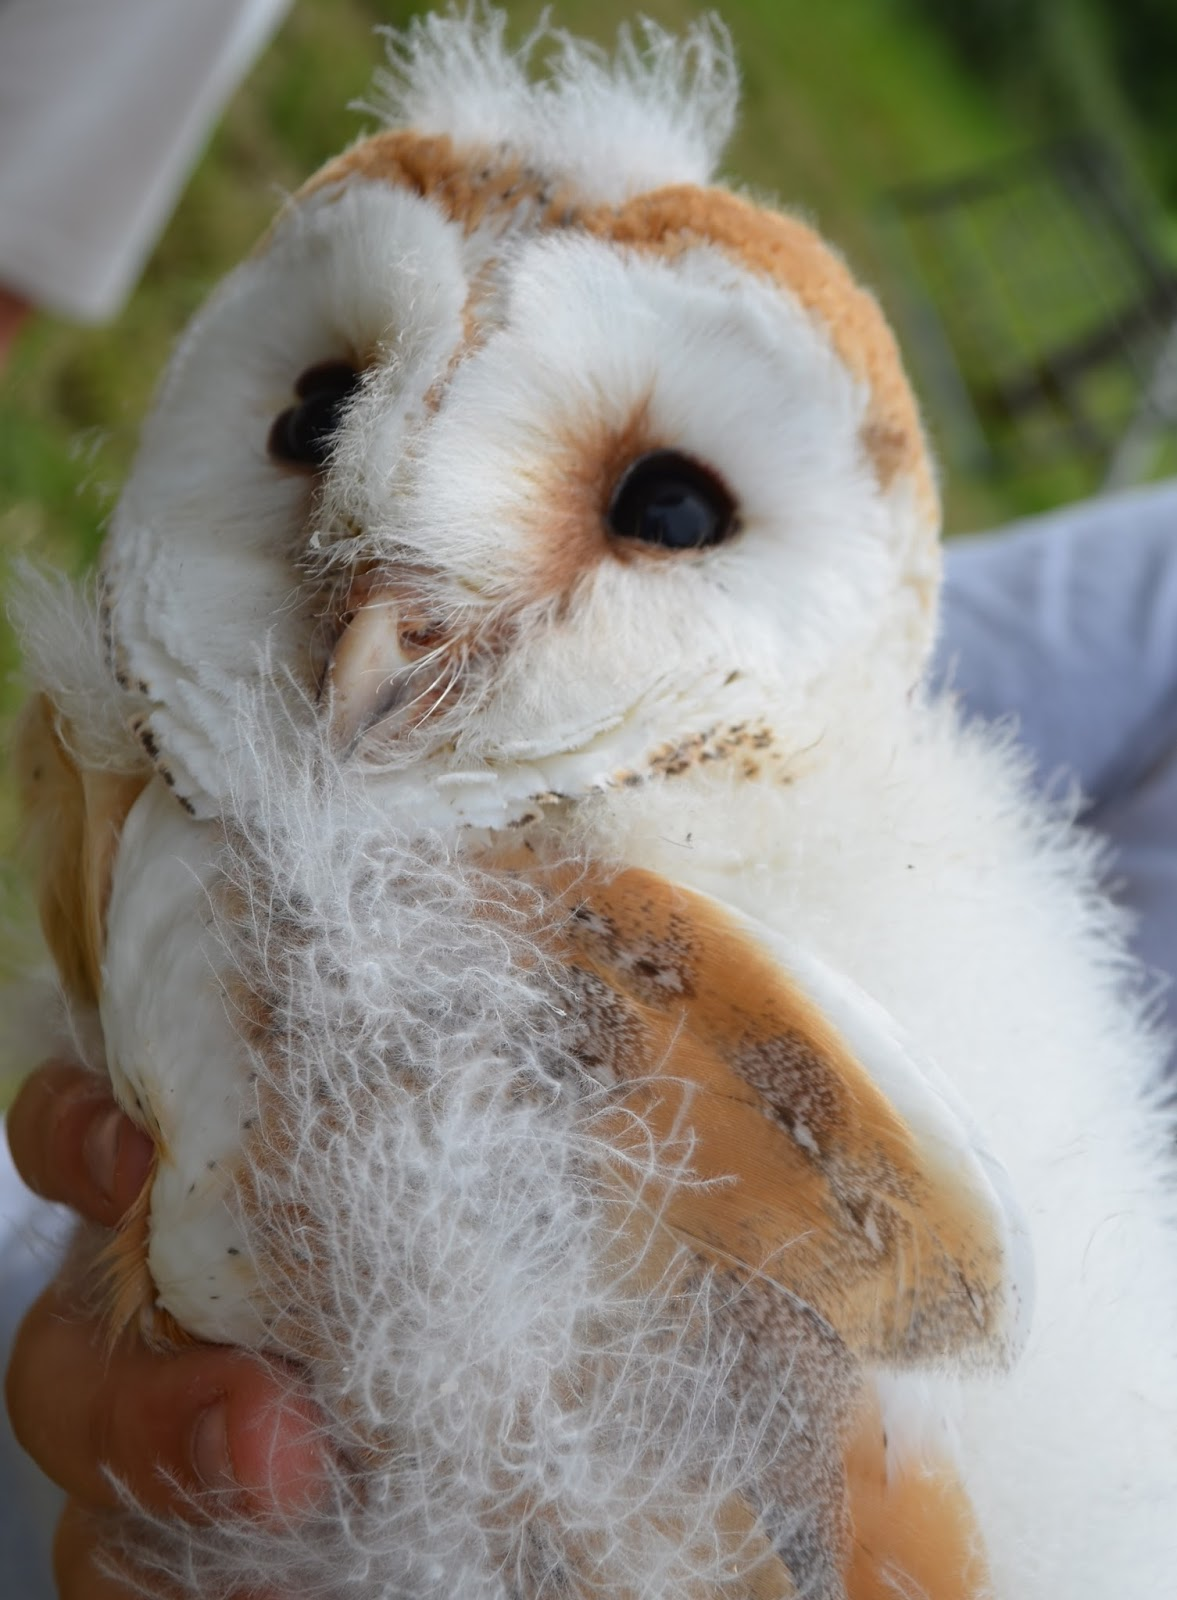 sustainable garden: baby barn owls ....